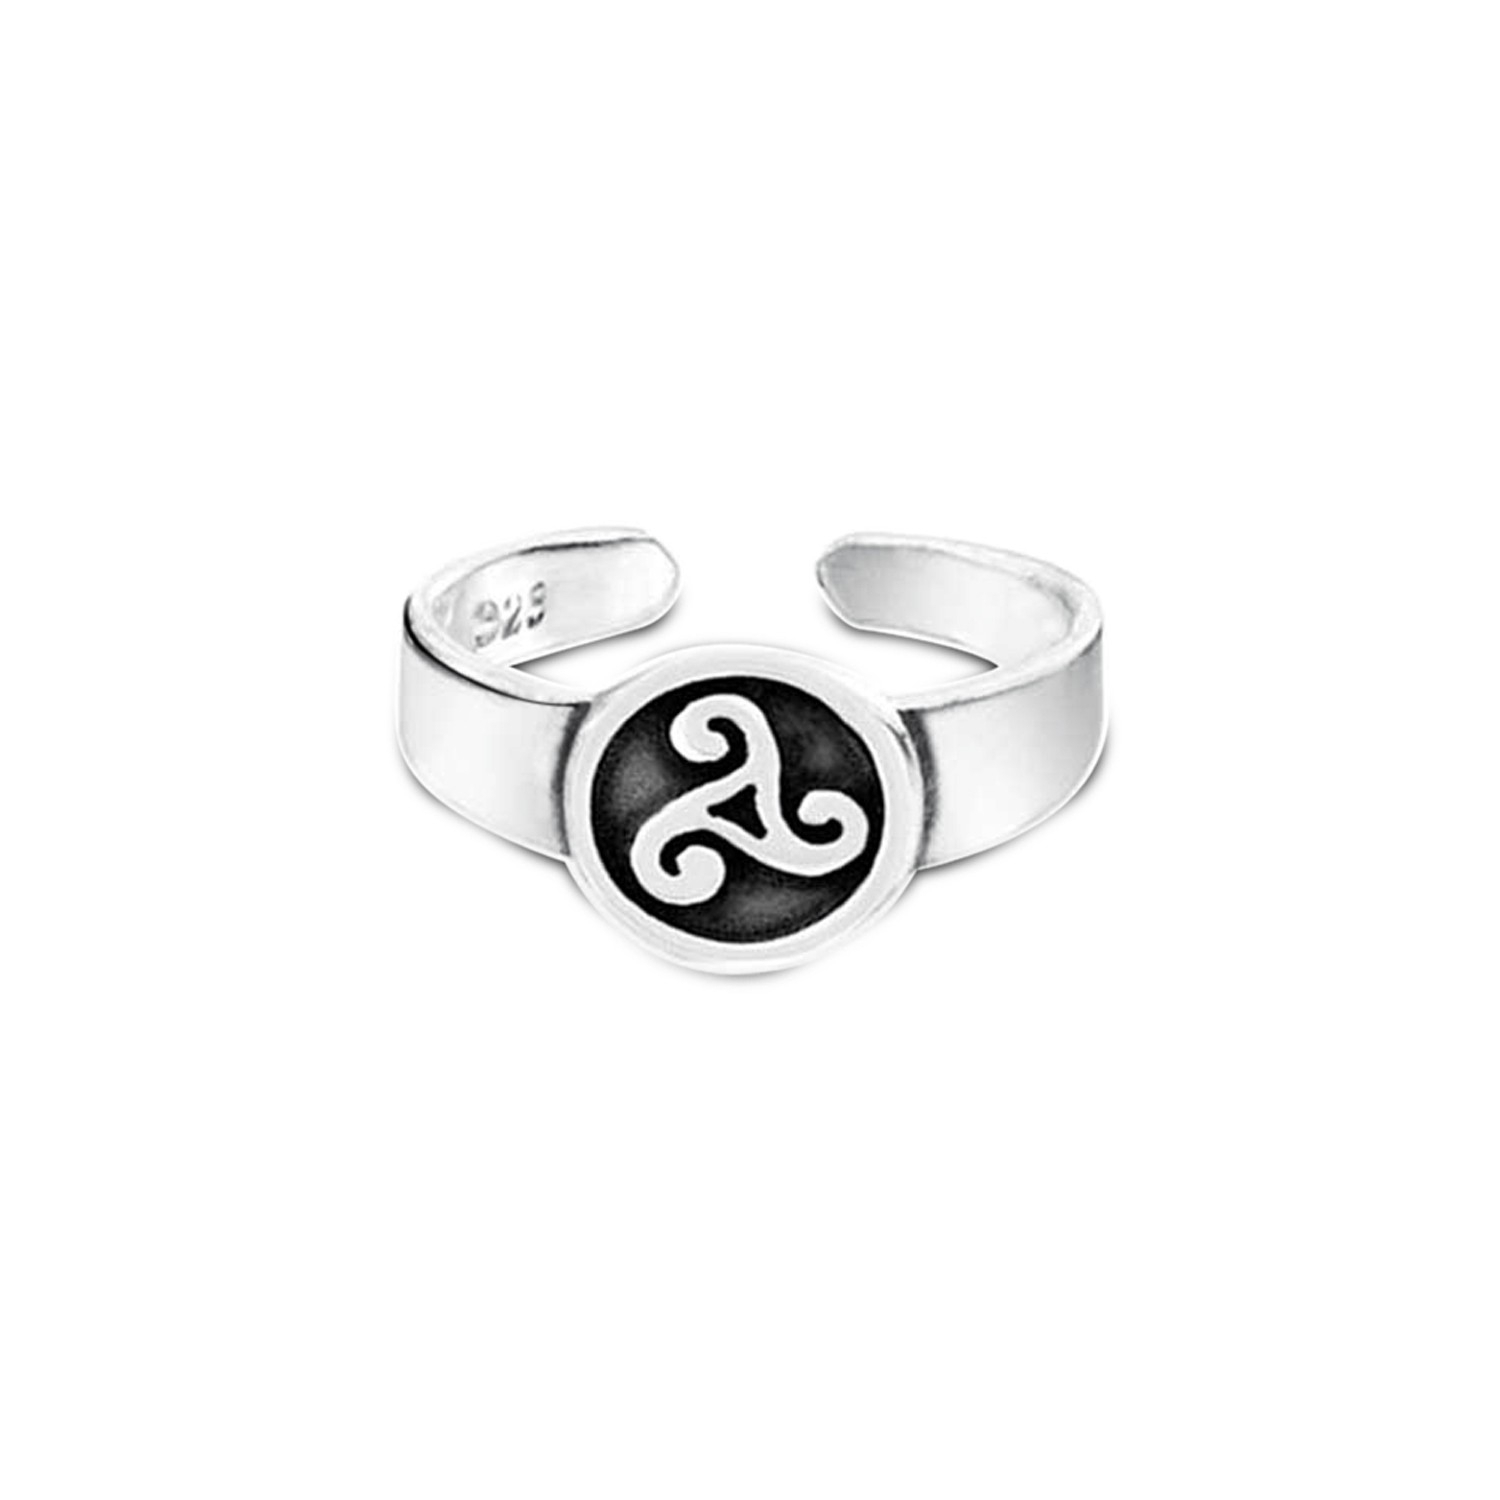 Adjustable Sterling Silver Celtic Toe Ring Triskele Midi Rings In Most Recent Celtic Toe Rings (View 1 of 15)